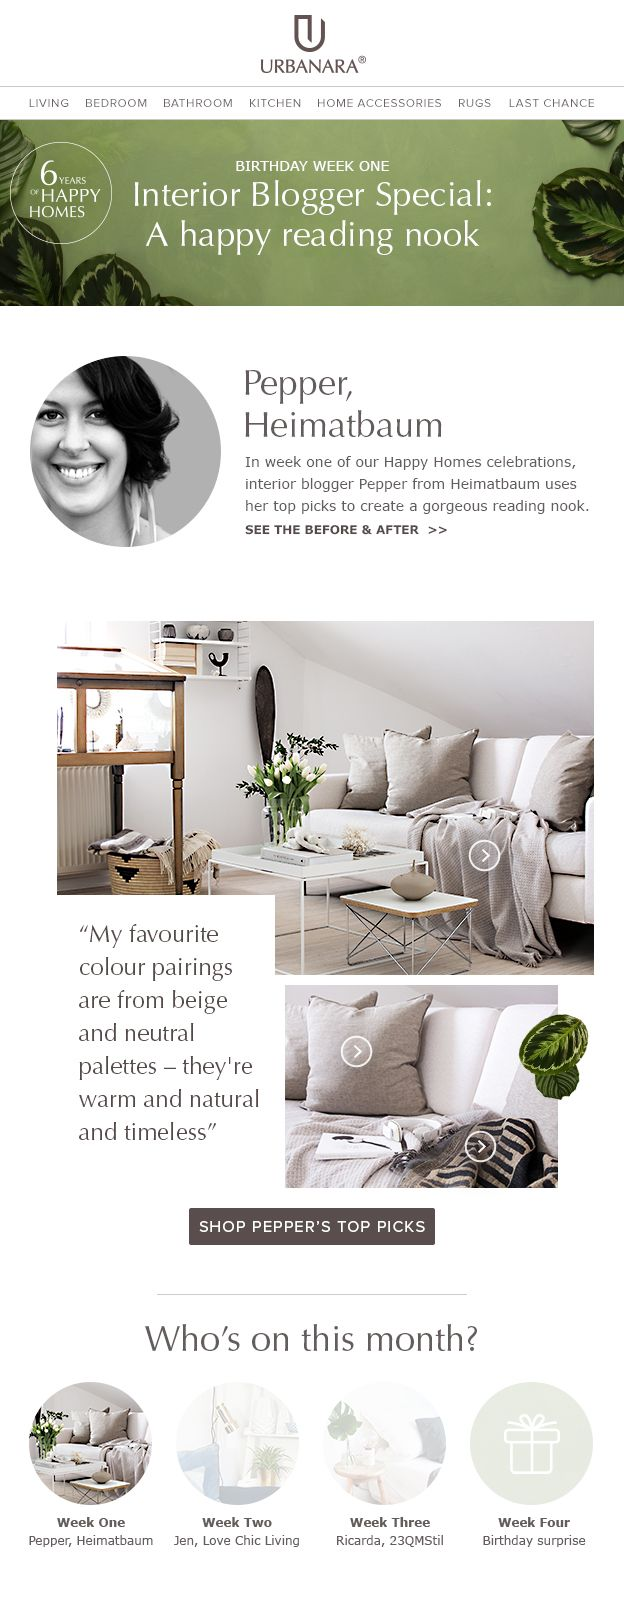 URBANARA newsletter template for blogger inspiration with Heimatbaum and 'get the look' home textiles and decor. Follows us for tips and inspiration for your home decor, interior or fashion newsletters.